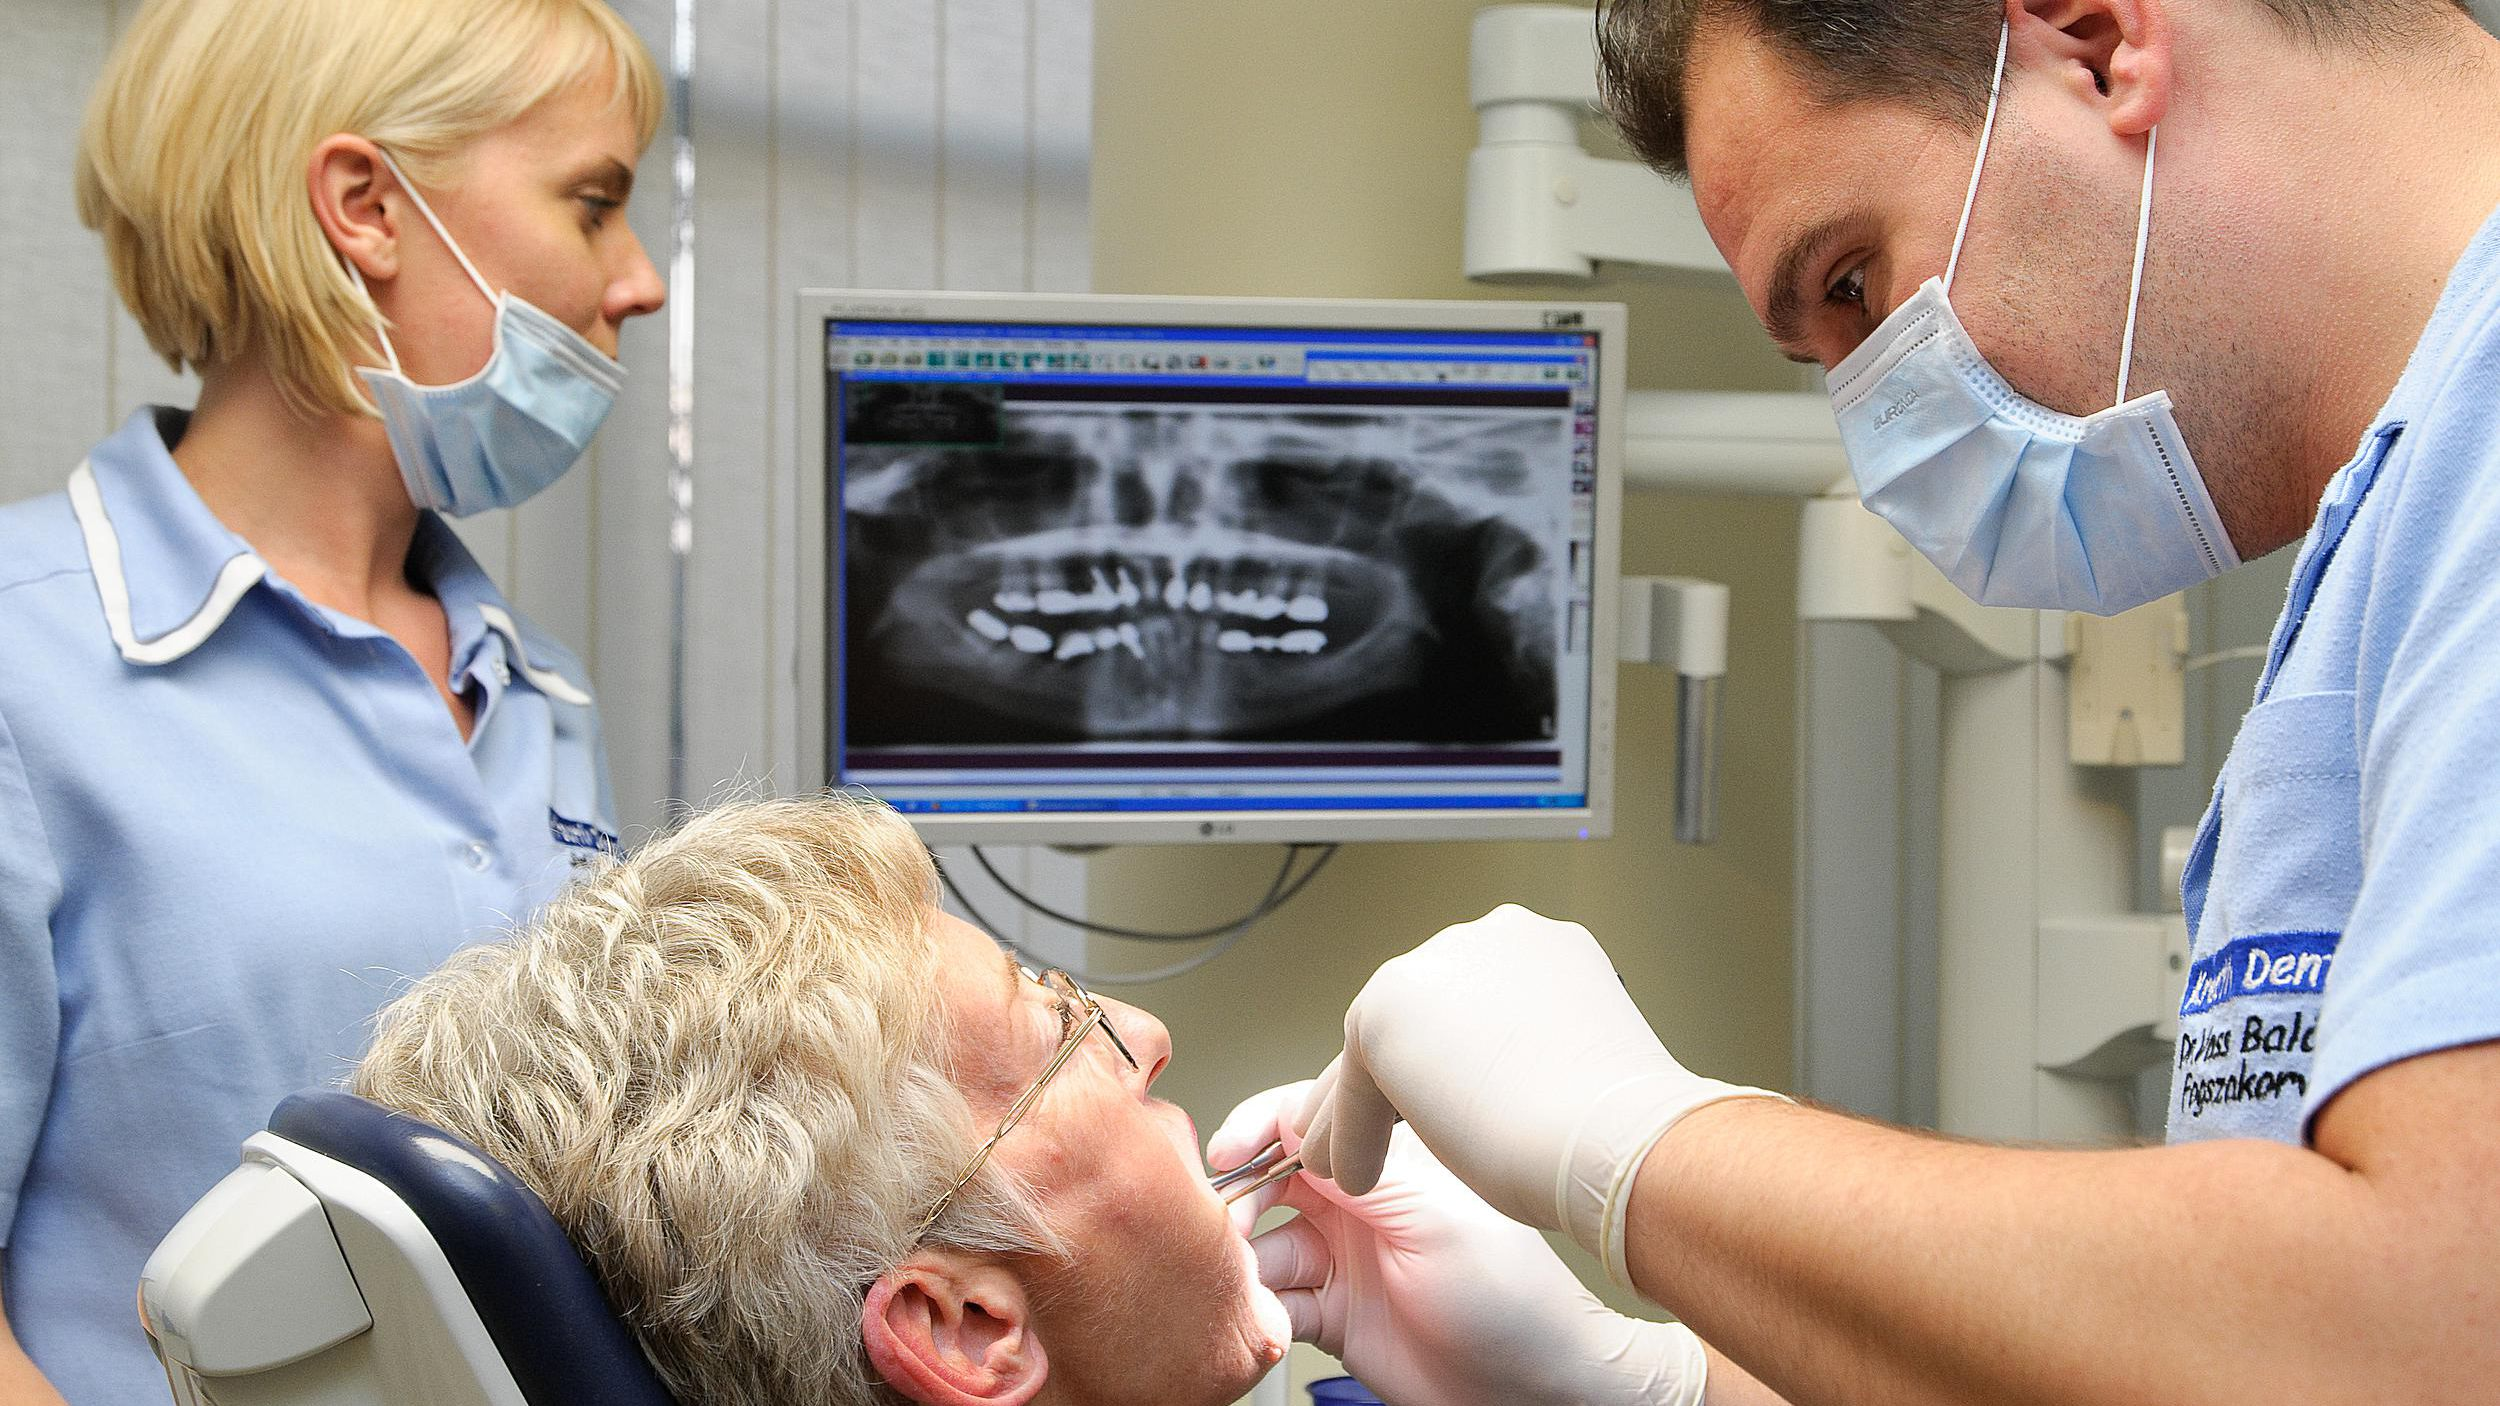 How to Prepare for Oral Surgery